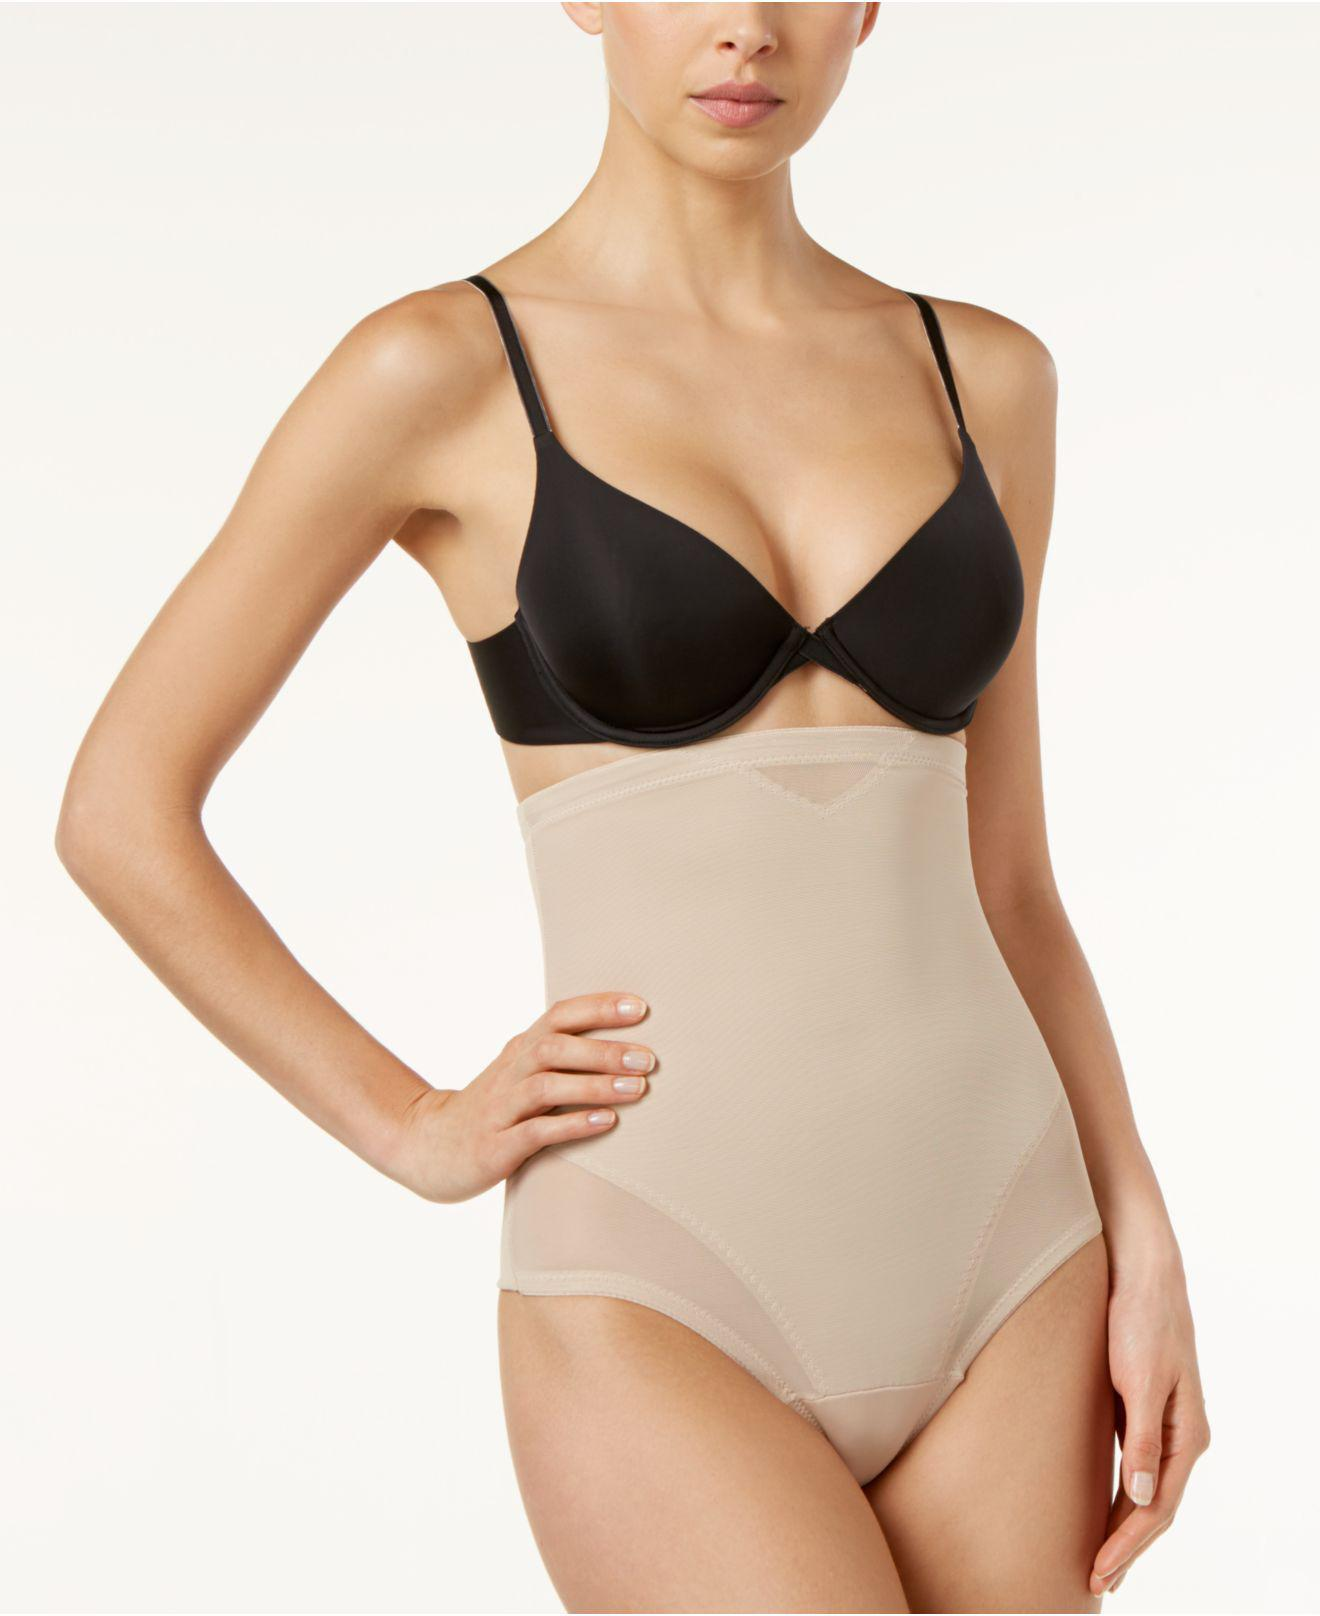 a3f6a936cebb3 Miraclesuit - Multicolor Extra Firm Control High-waist Sheer Thong 2778 -  Lyst. View fullscreen